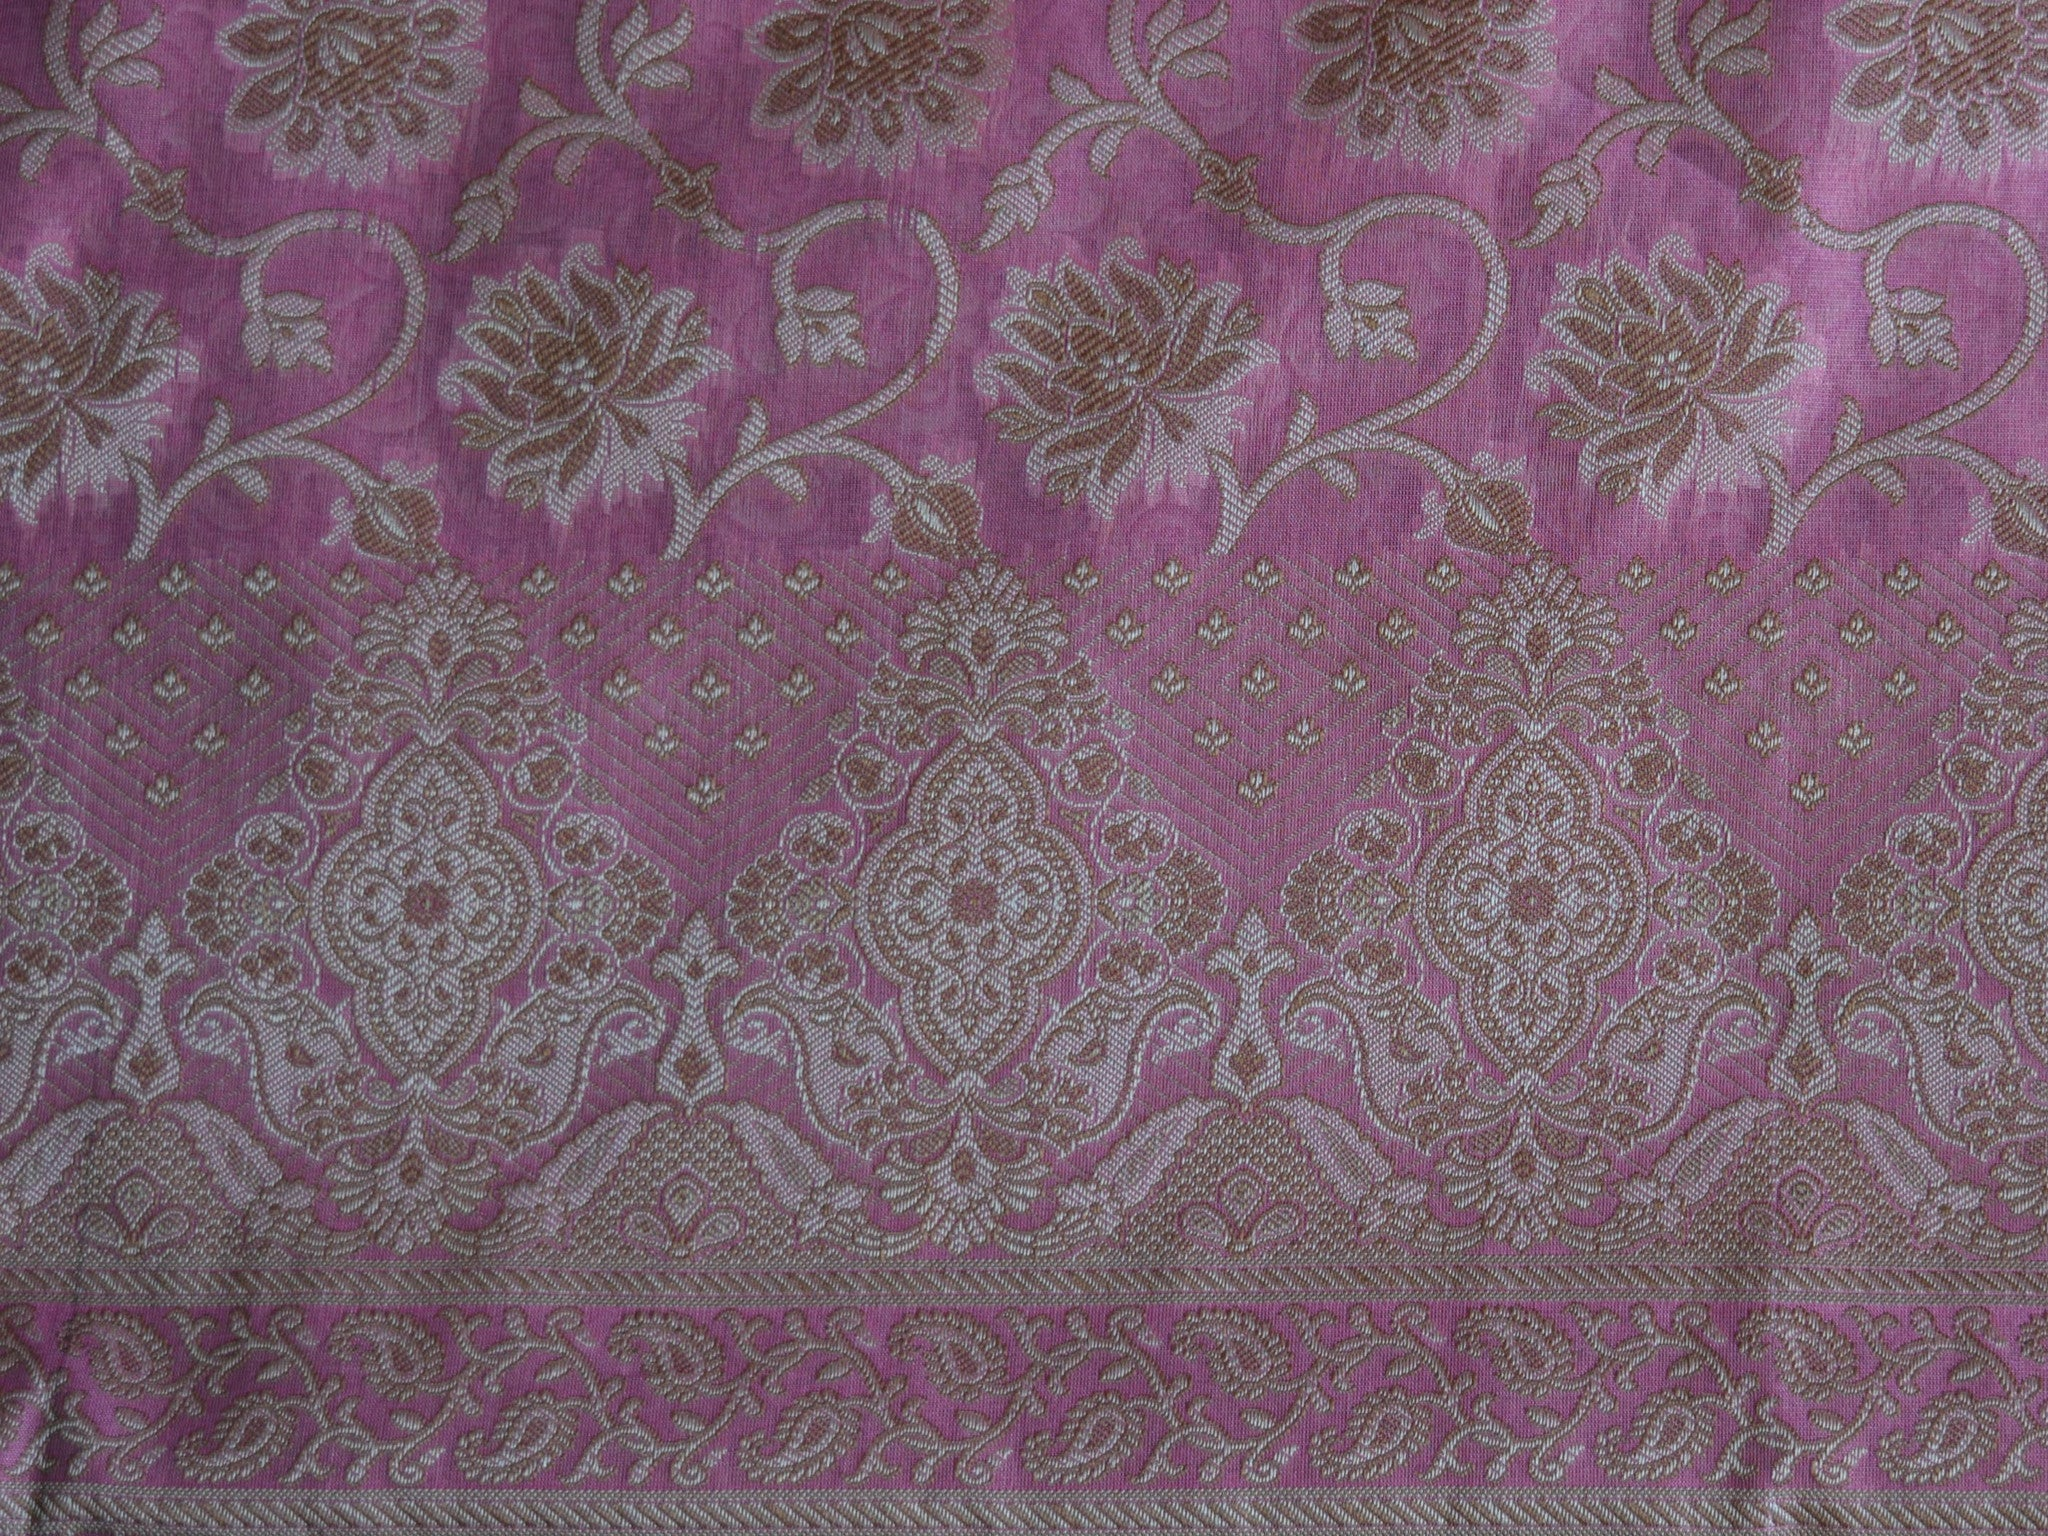 Banarasee/Banarasi Salwar Kameez Cotton Silk Resham Woven With Floral Jaal Fabric-Pink